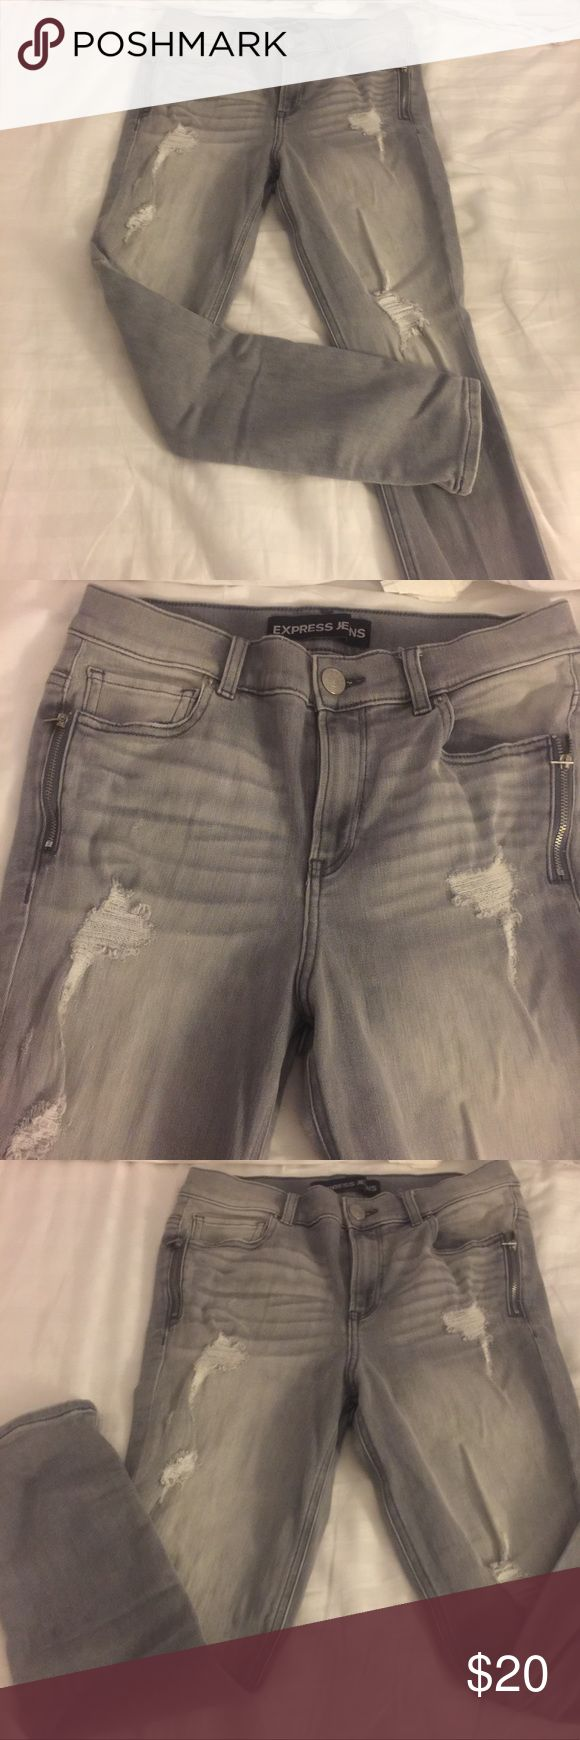 Gray Express size 8Short jeans Washed out gray denim stretch skinny jeans. Super cute! High waisted featuring two zipper pockets. These are size 8 SHORT! They have great stretch to them and are super comfy! Only worn maybe 3x! Awesome condition just a little wrinkled 😉 but no stains or tears(that aren't supposed to be there haha) Express Jeans Skinny